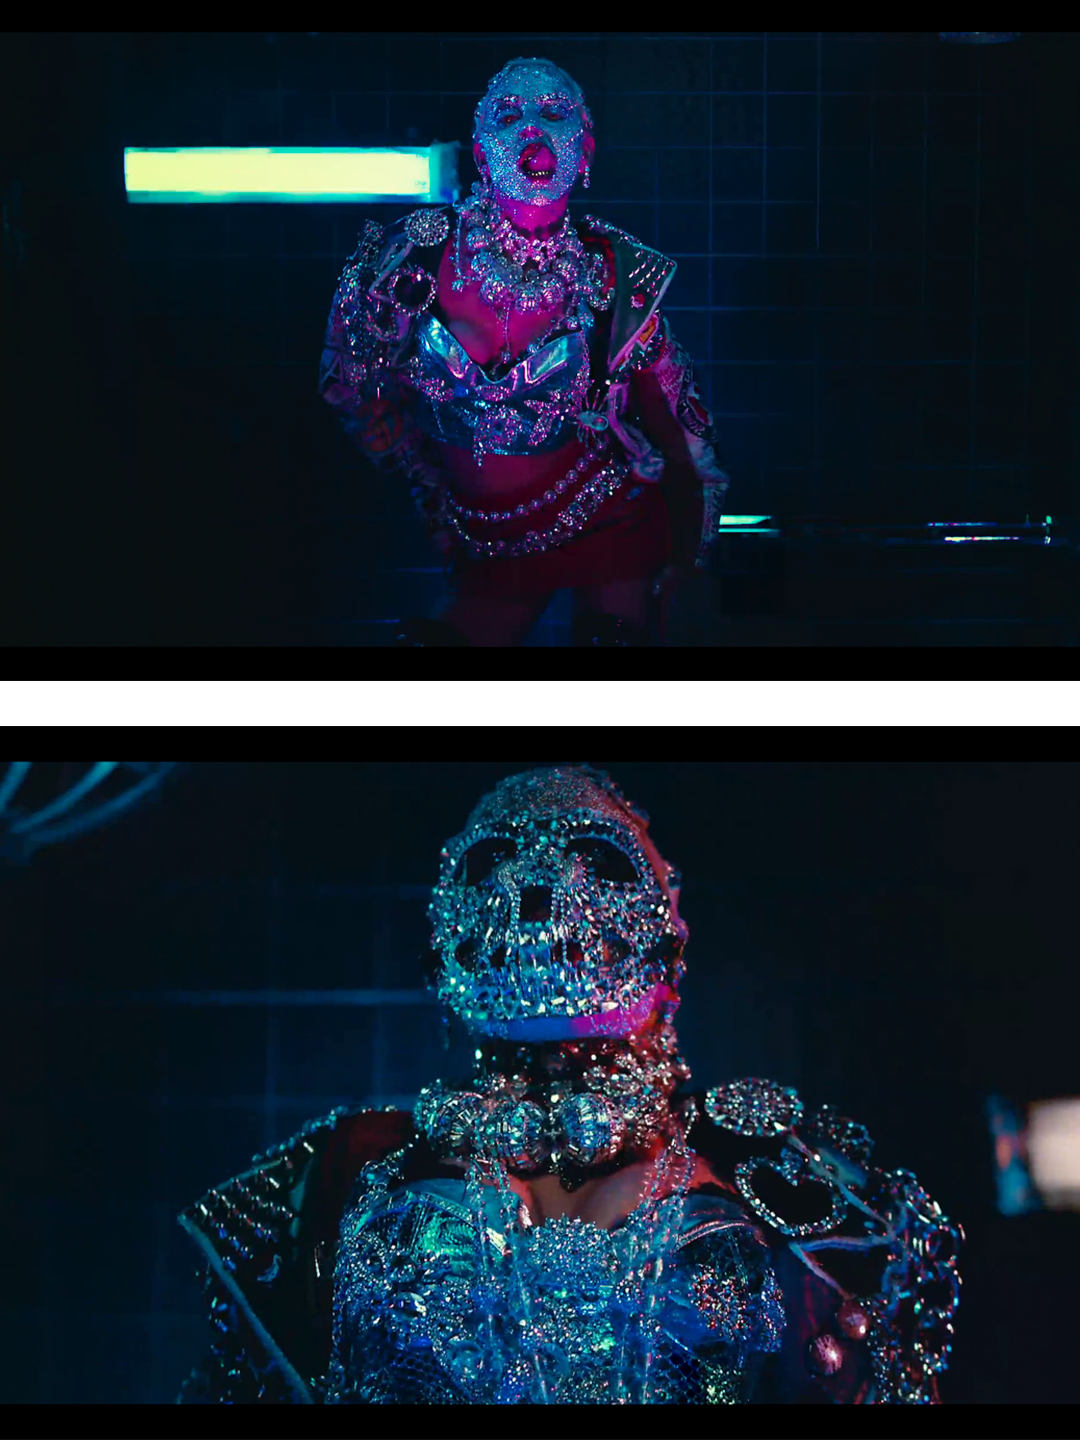 AKV FEATURED IN BROOKE CANDY'S OPULENCE MUSIC VIDEO, STYLED BY NICOLA FORMICHETTI, SHOT BY STEVEN MEISEL, APRIL 2014